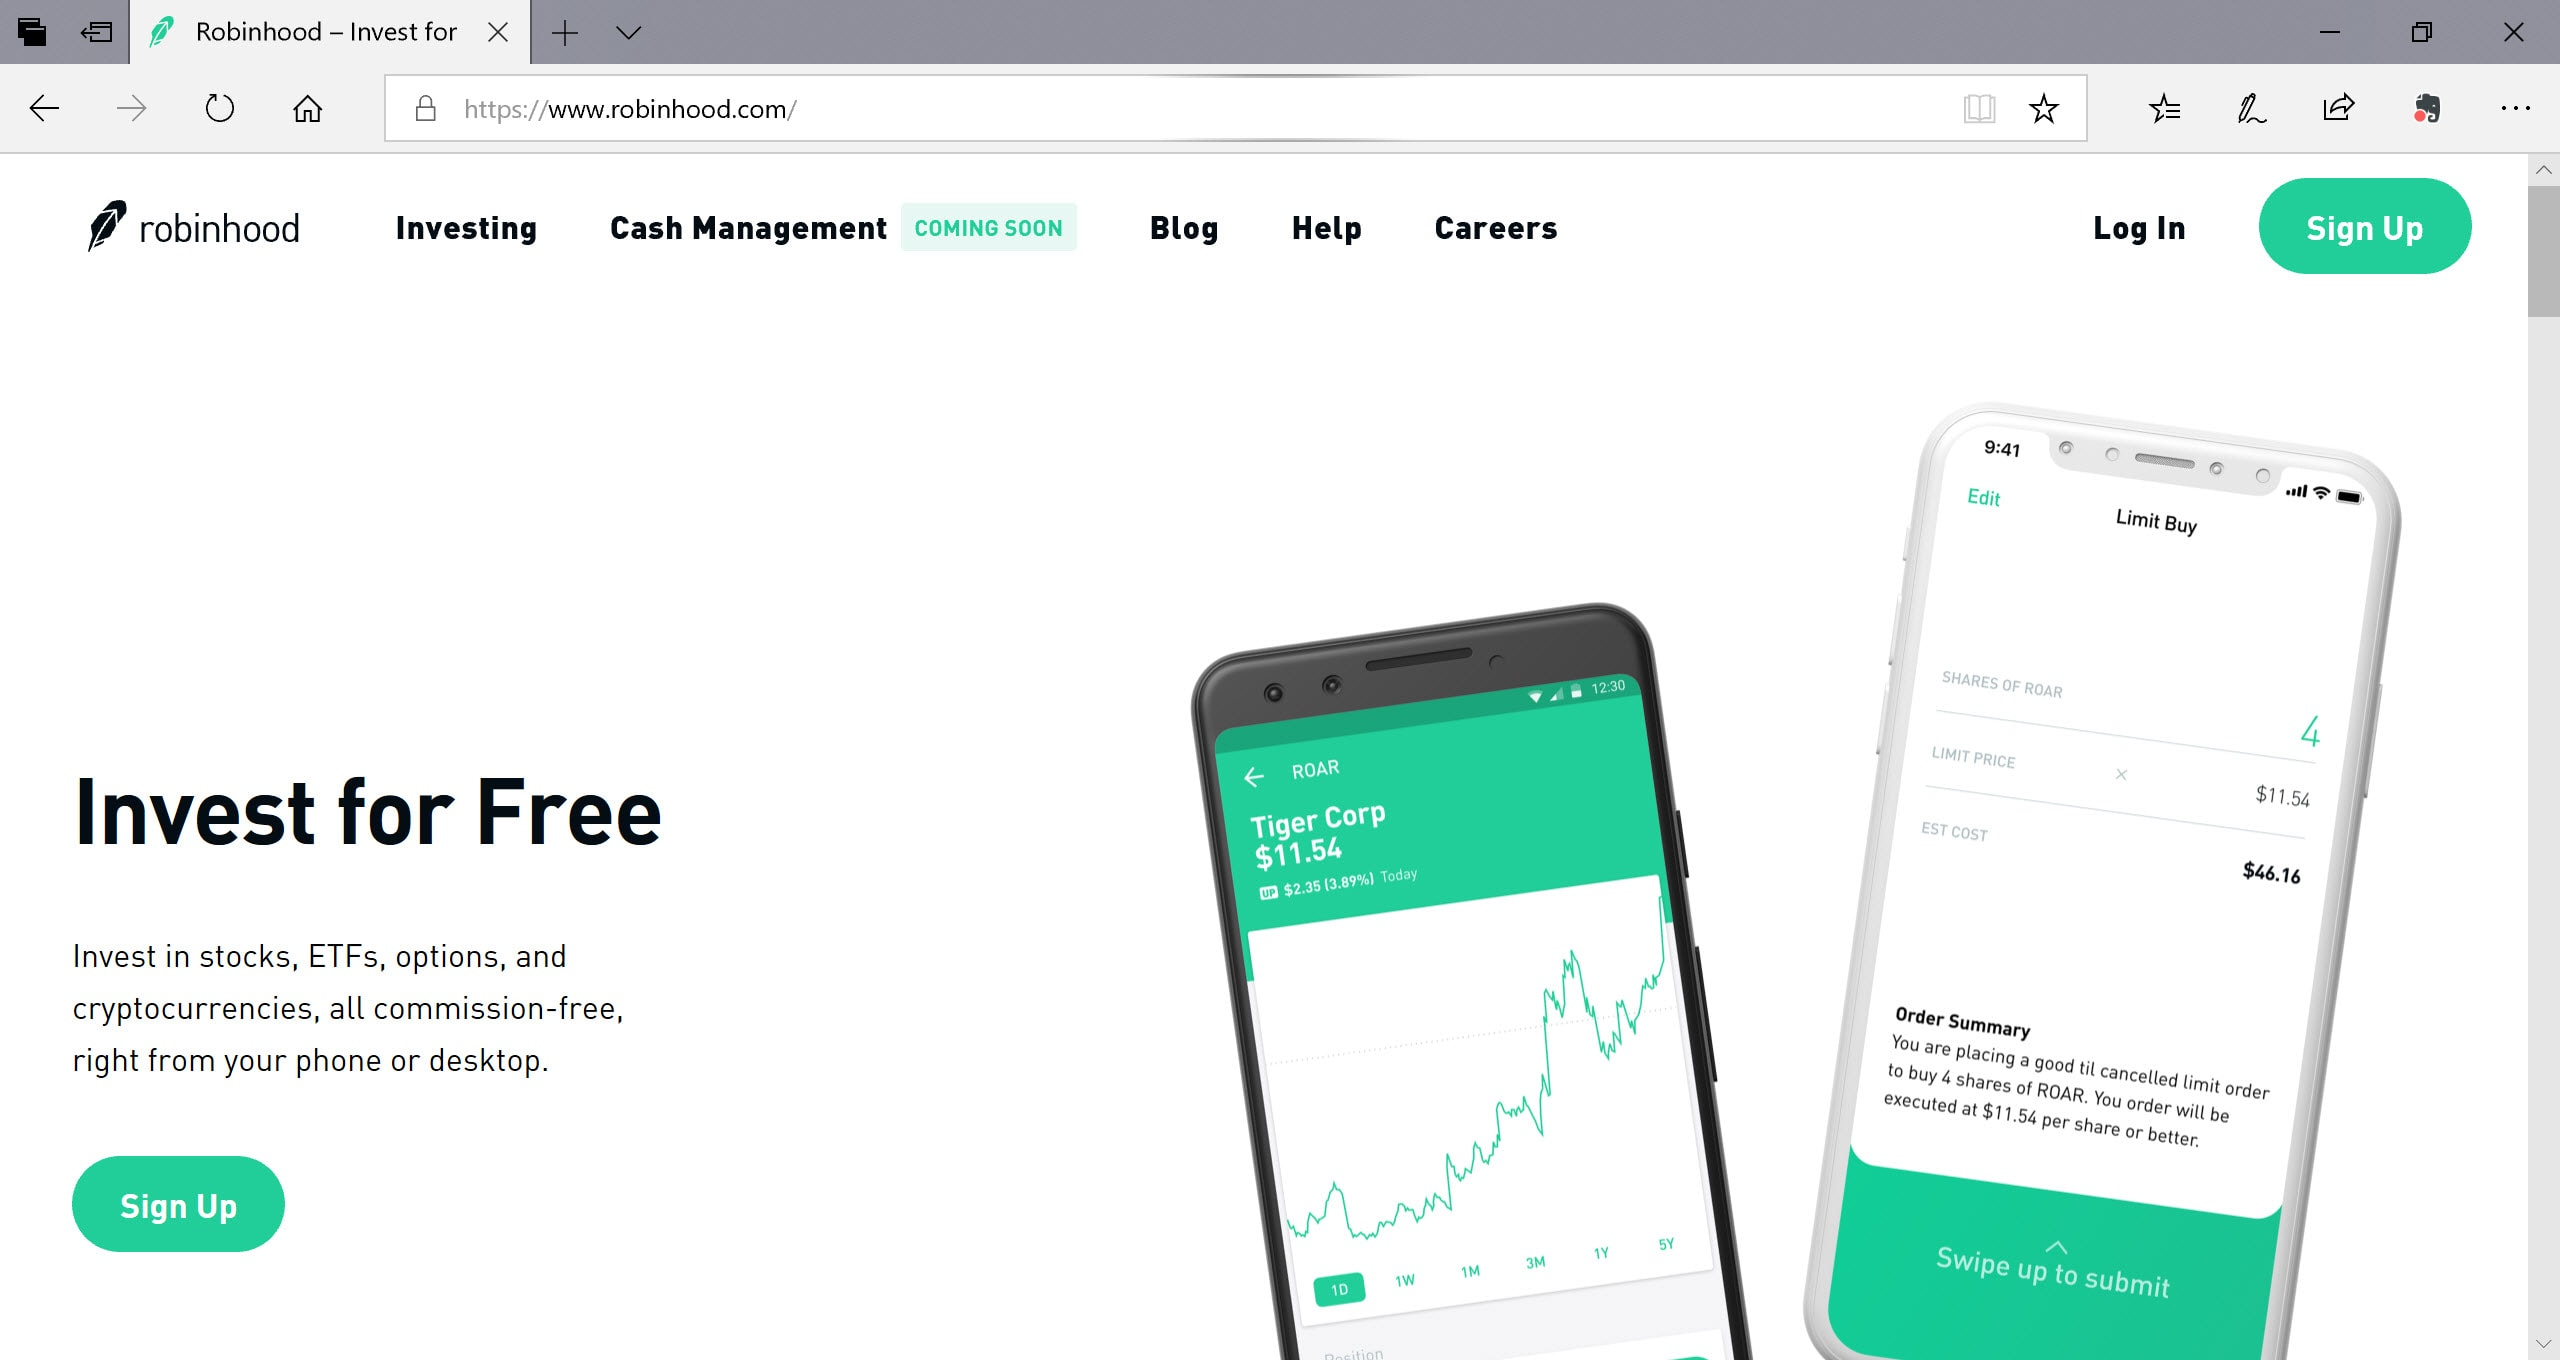 How Long Does Your Robinhood Account Get Locked For Overtradding